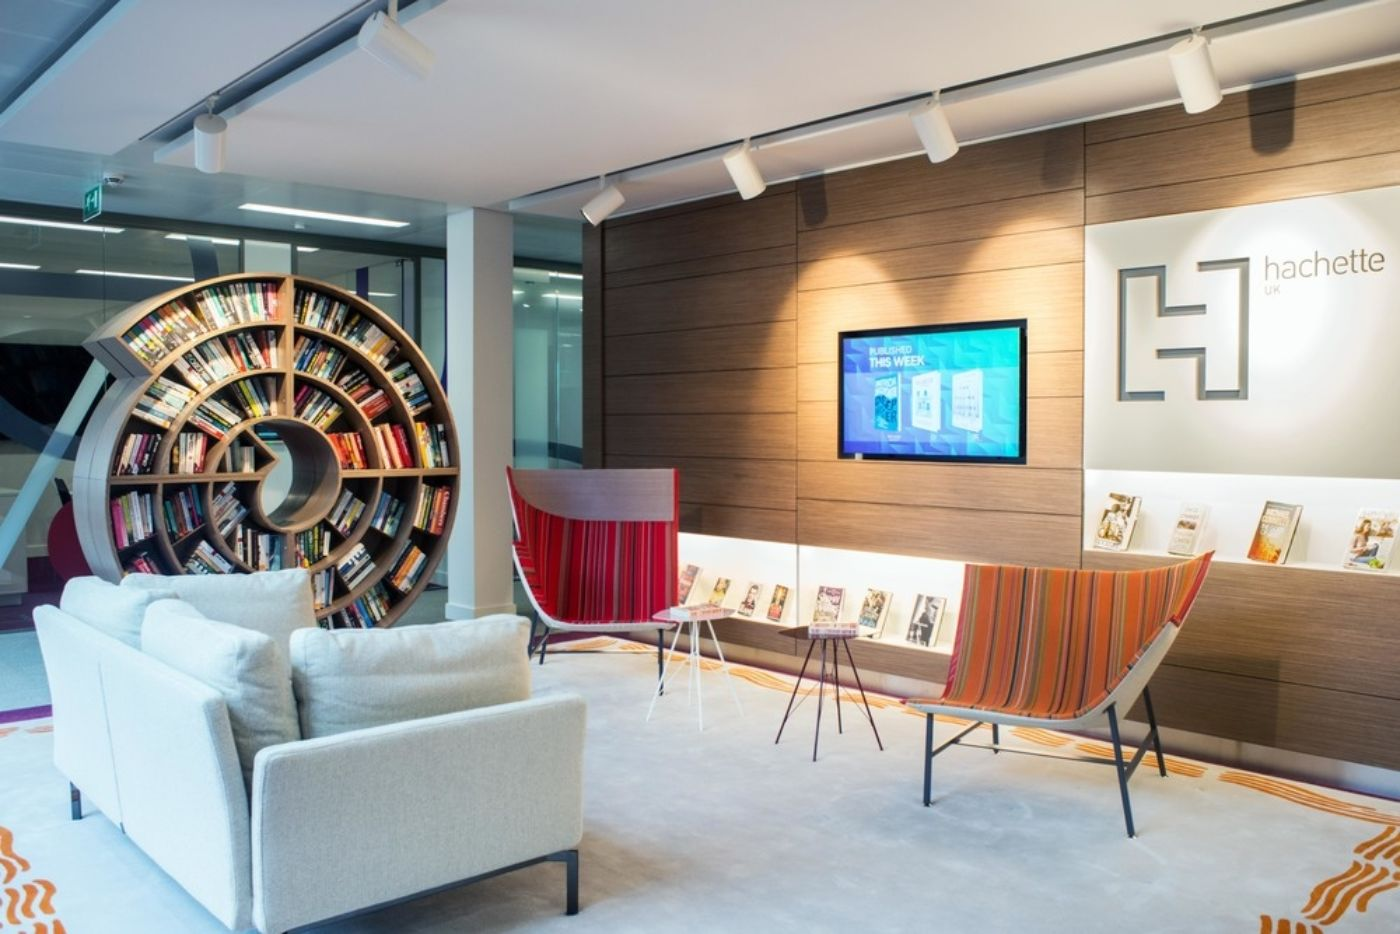 Cool chairs and circular book case in this funky office fit out